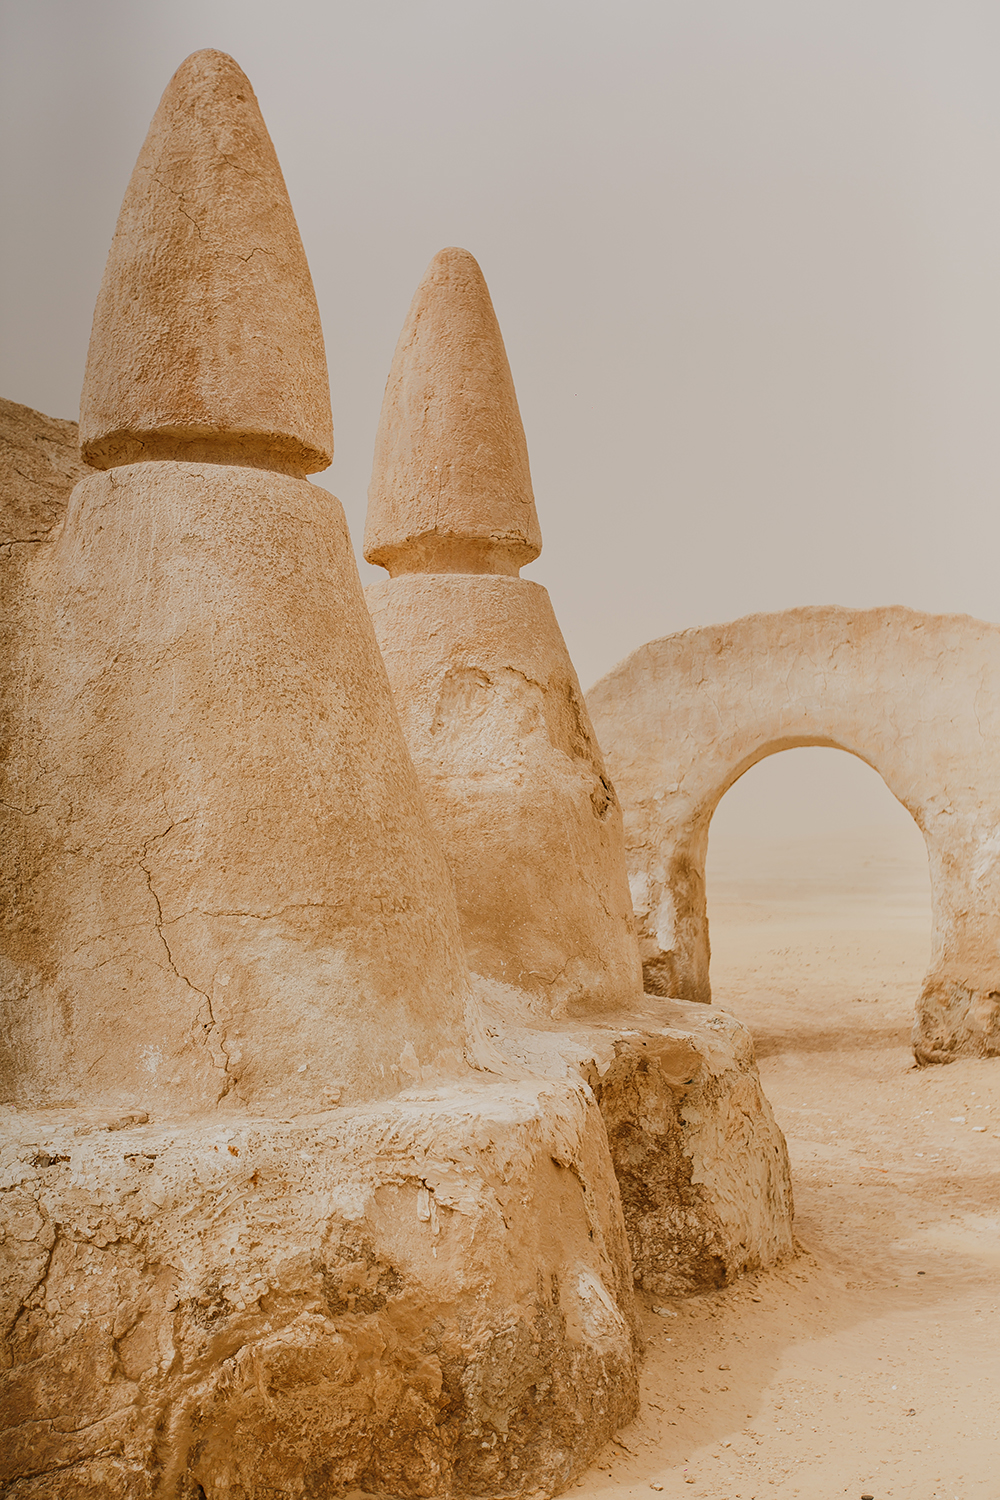 SN2_2132-sophie-narses-photographe-Tunisie-Voyage-book-shooting-geneve-mariage-suisse-famille-animaux-tirages-art-cours-photo-paysages-desert